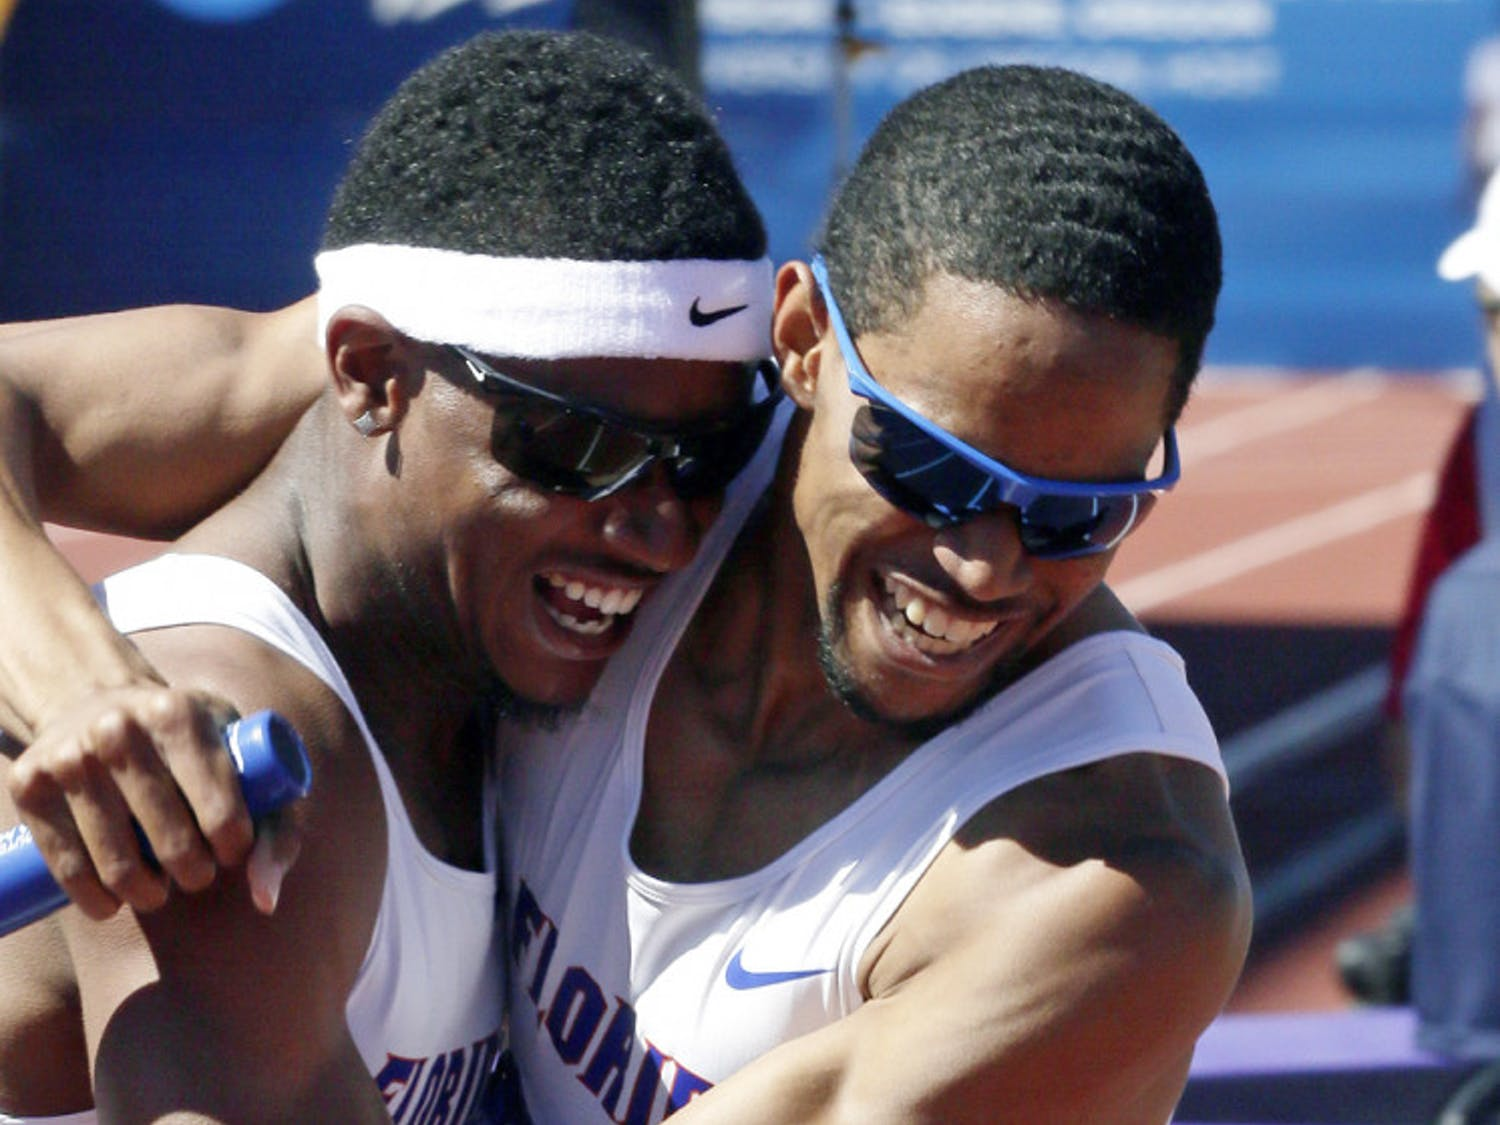 Hugh Graham Jr. (left) hugs Arman Hall after winning the 4x400m relay during the NCAA outdoor championships in Eugene, Ore., on Saturday.